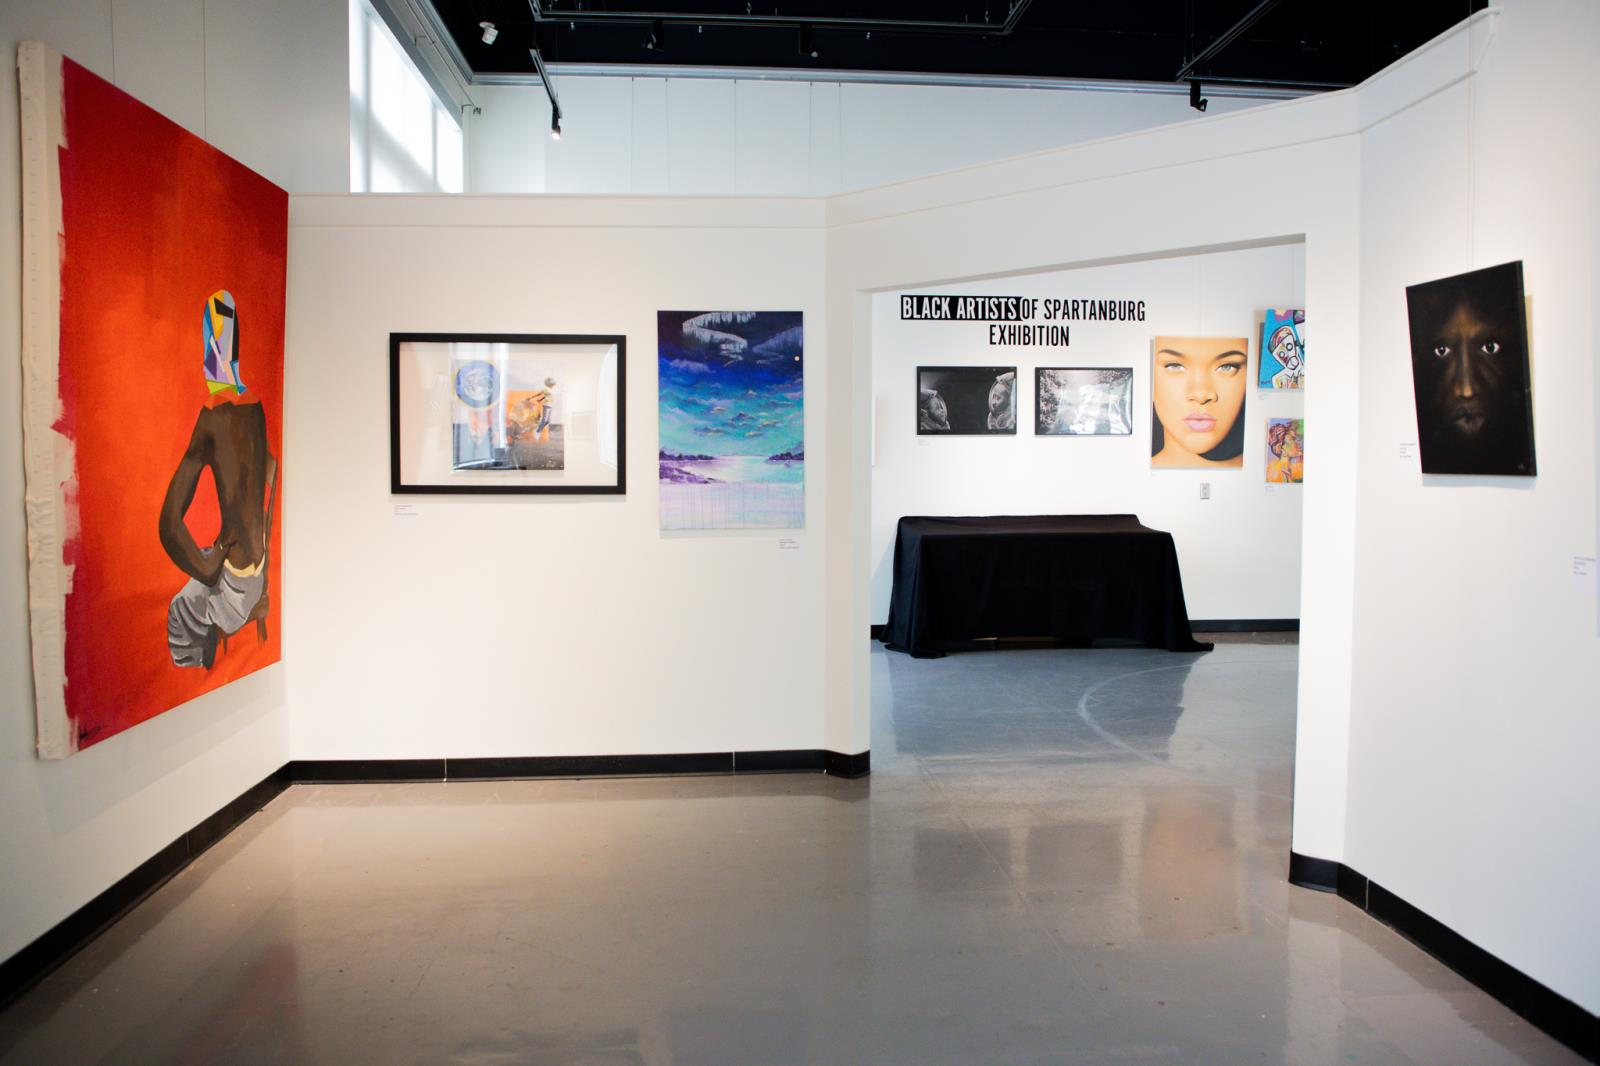 Black_Artists_of_Spartanburg_Exhibition1.jpg